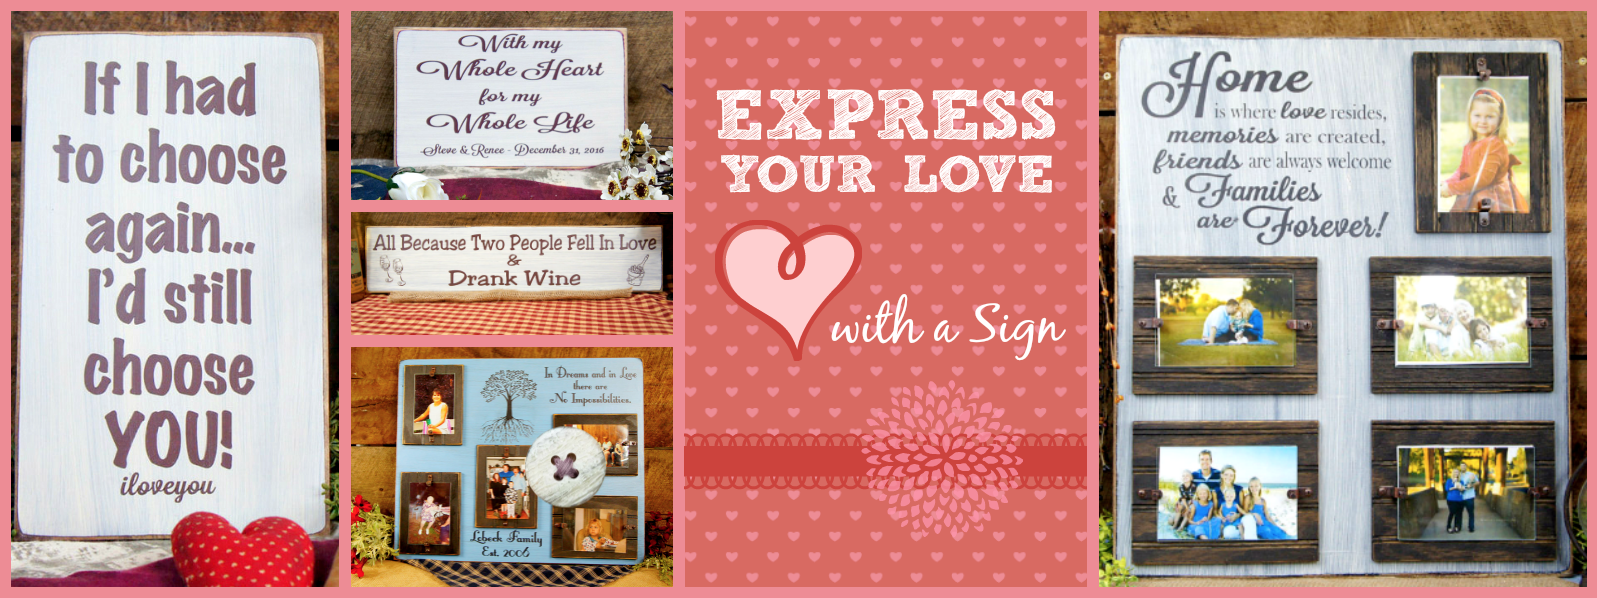 Express Your Love With a Sign